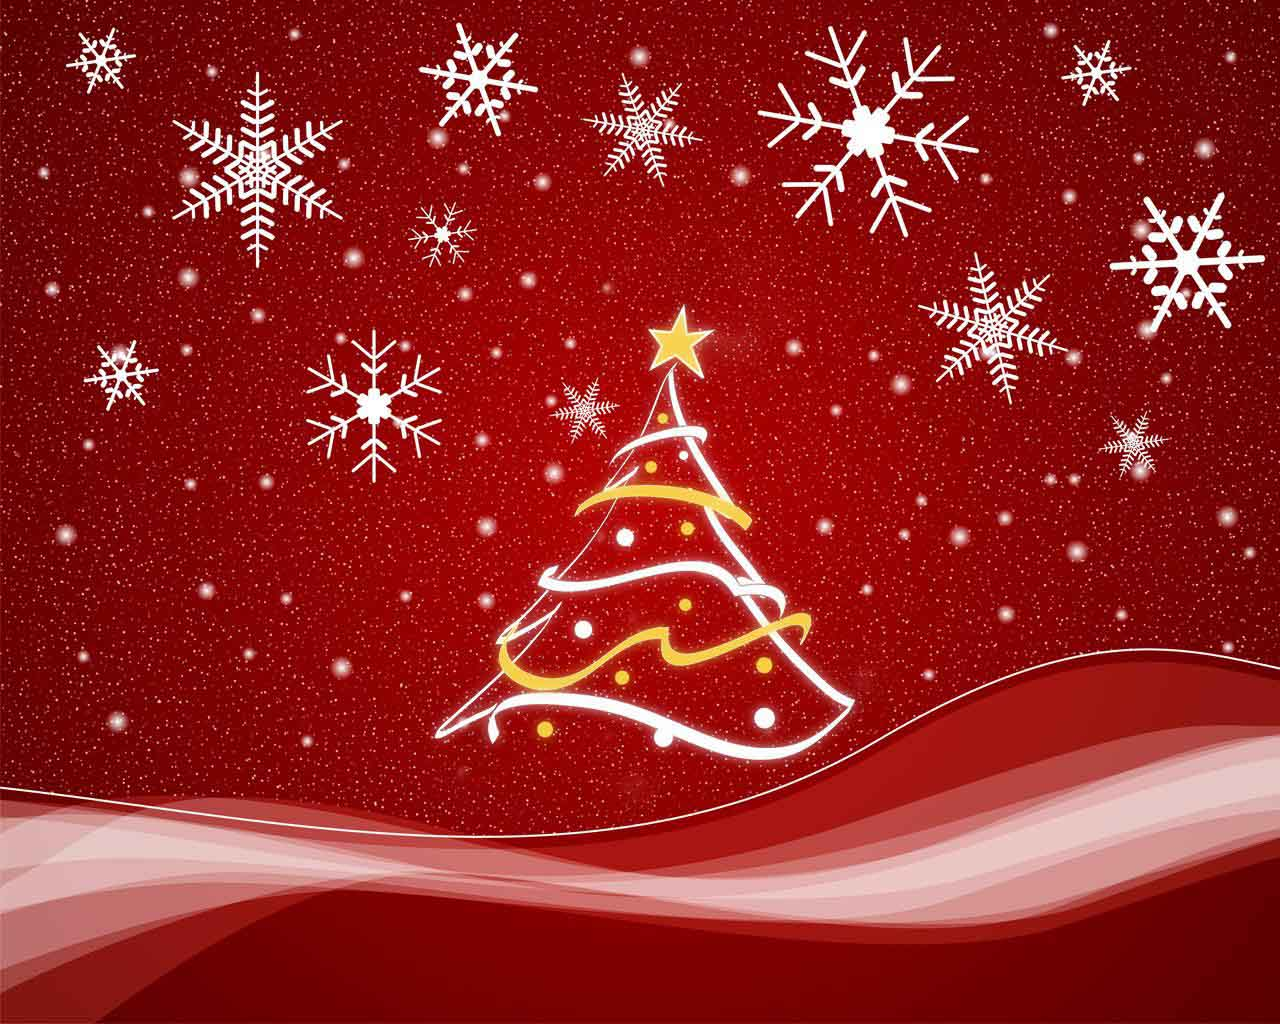 christmass card wallpapers